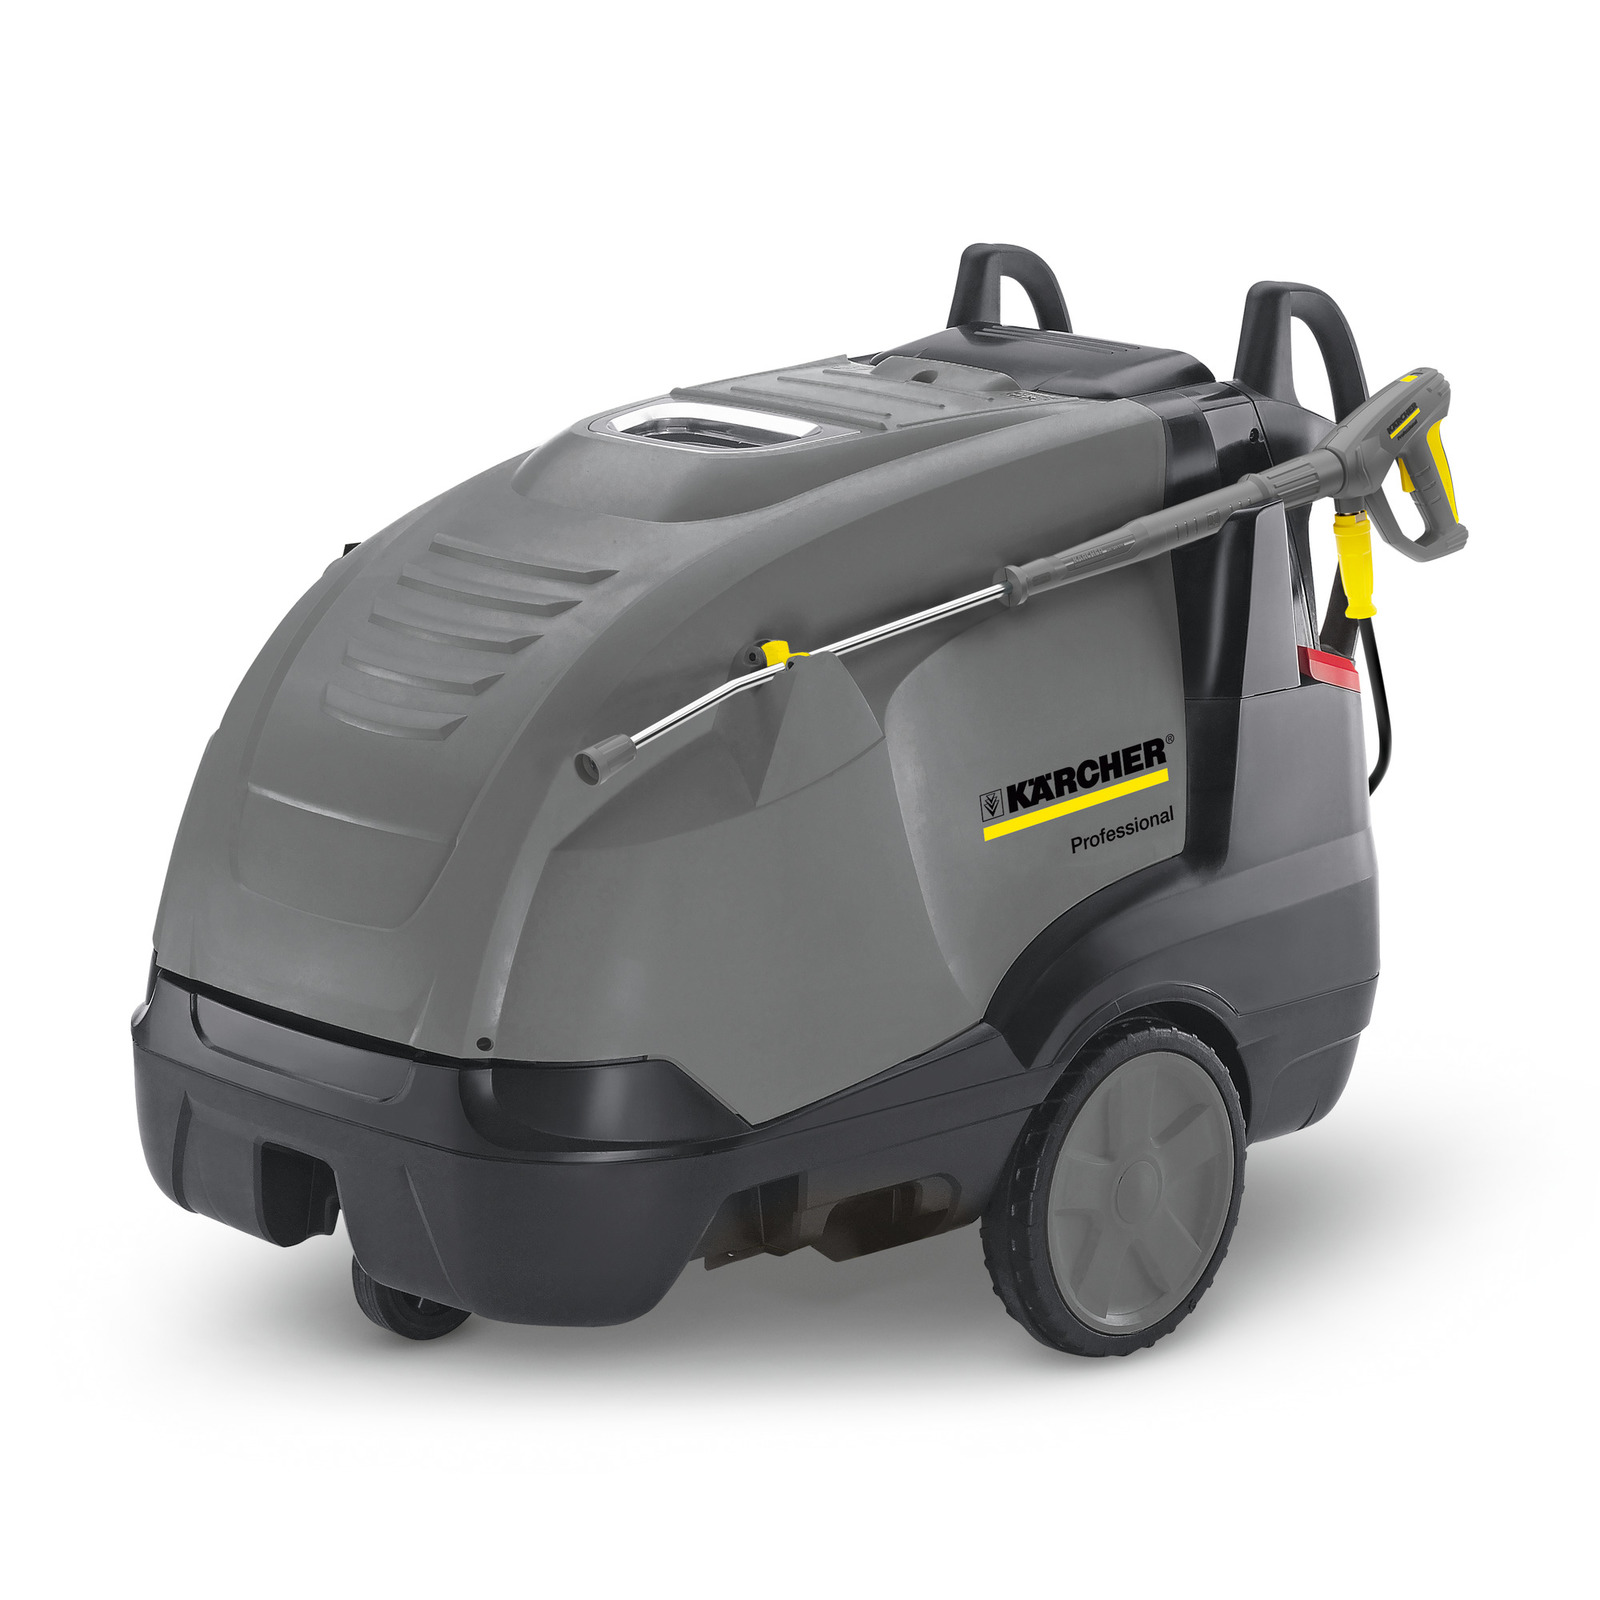 KARCHER - Hot Water High-Pressure Cleaners - HDS-E 8/16-4 M 24 KW